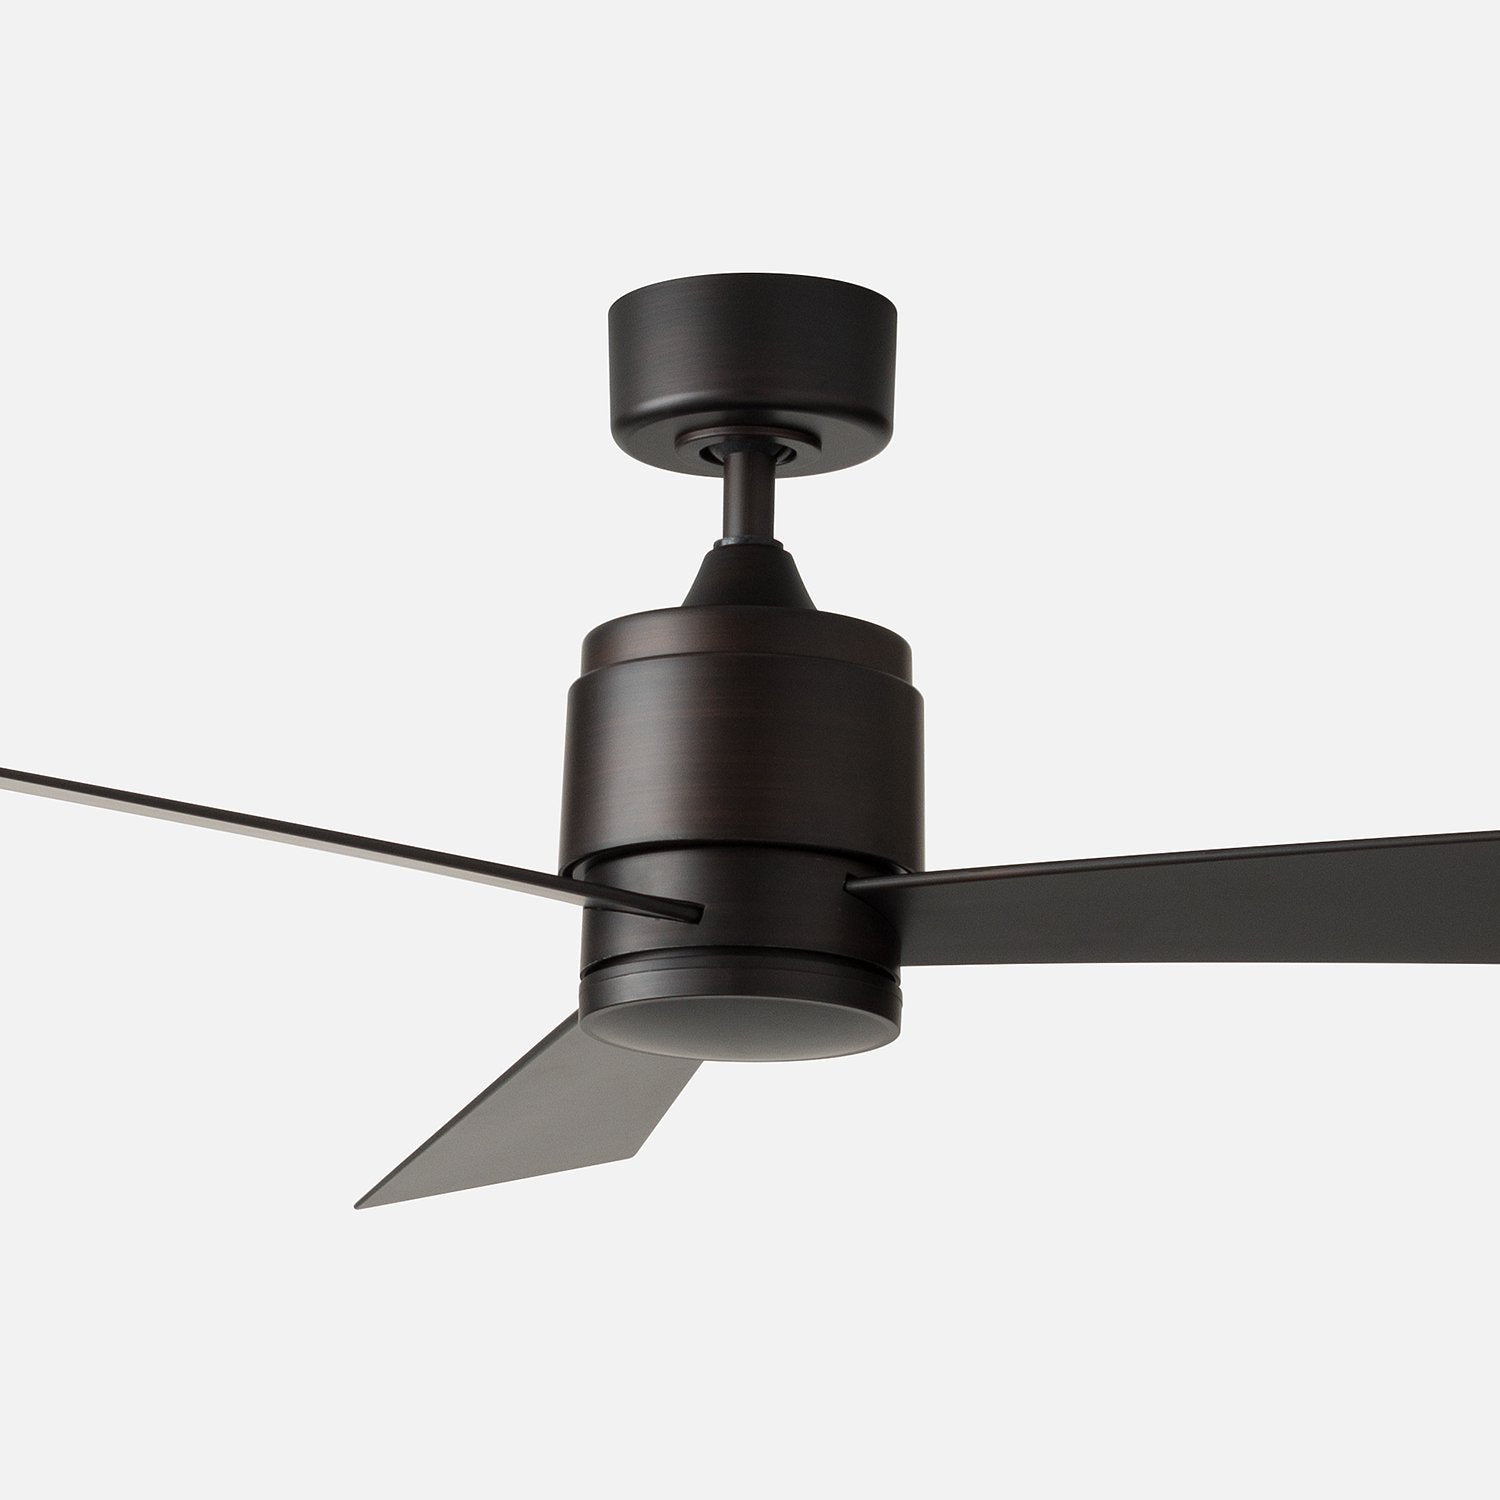 Zonix 52 led ceiling fan dark bronze schoolhouse zonix 52 aloadofball Choice Image